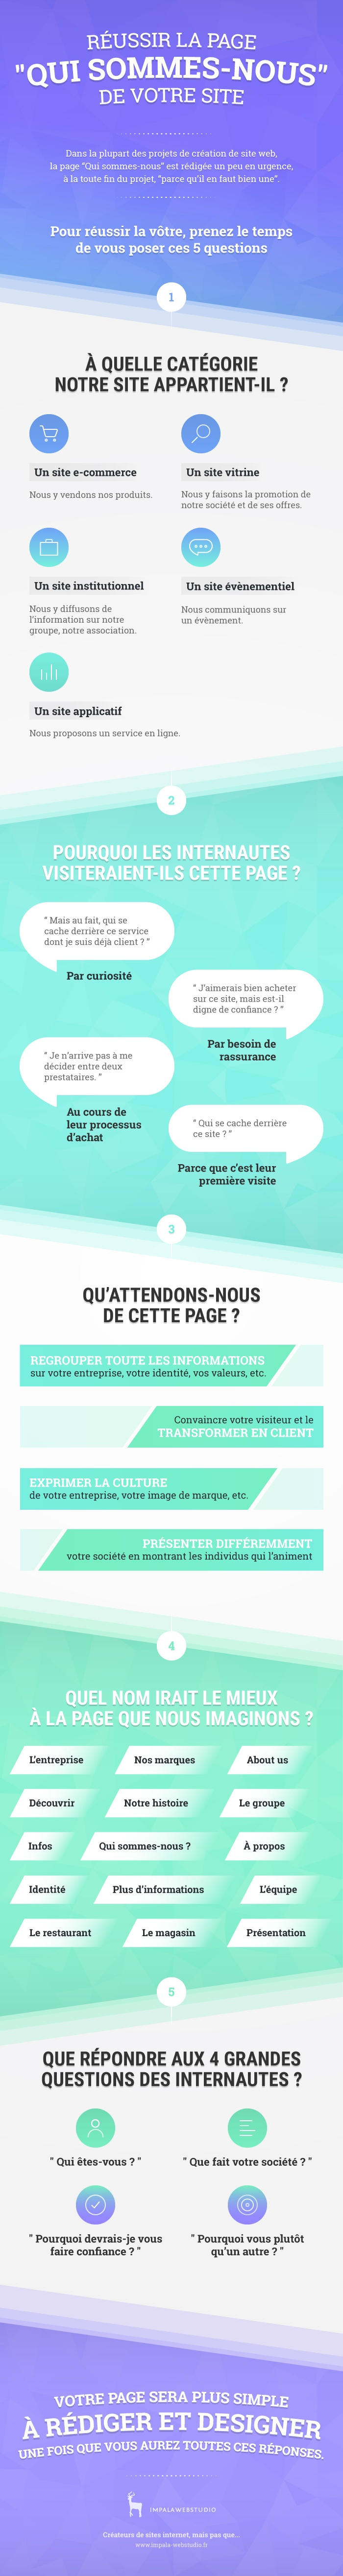 IWS_infographie-qui-sommes-nous_01.jpg